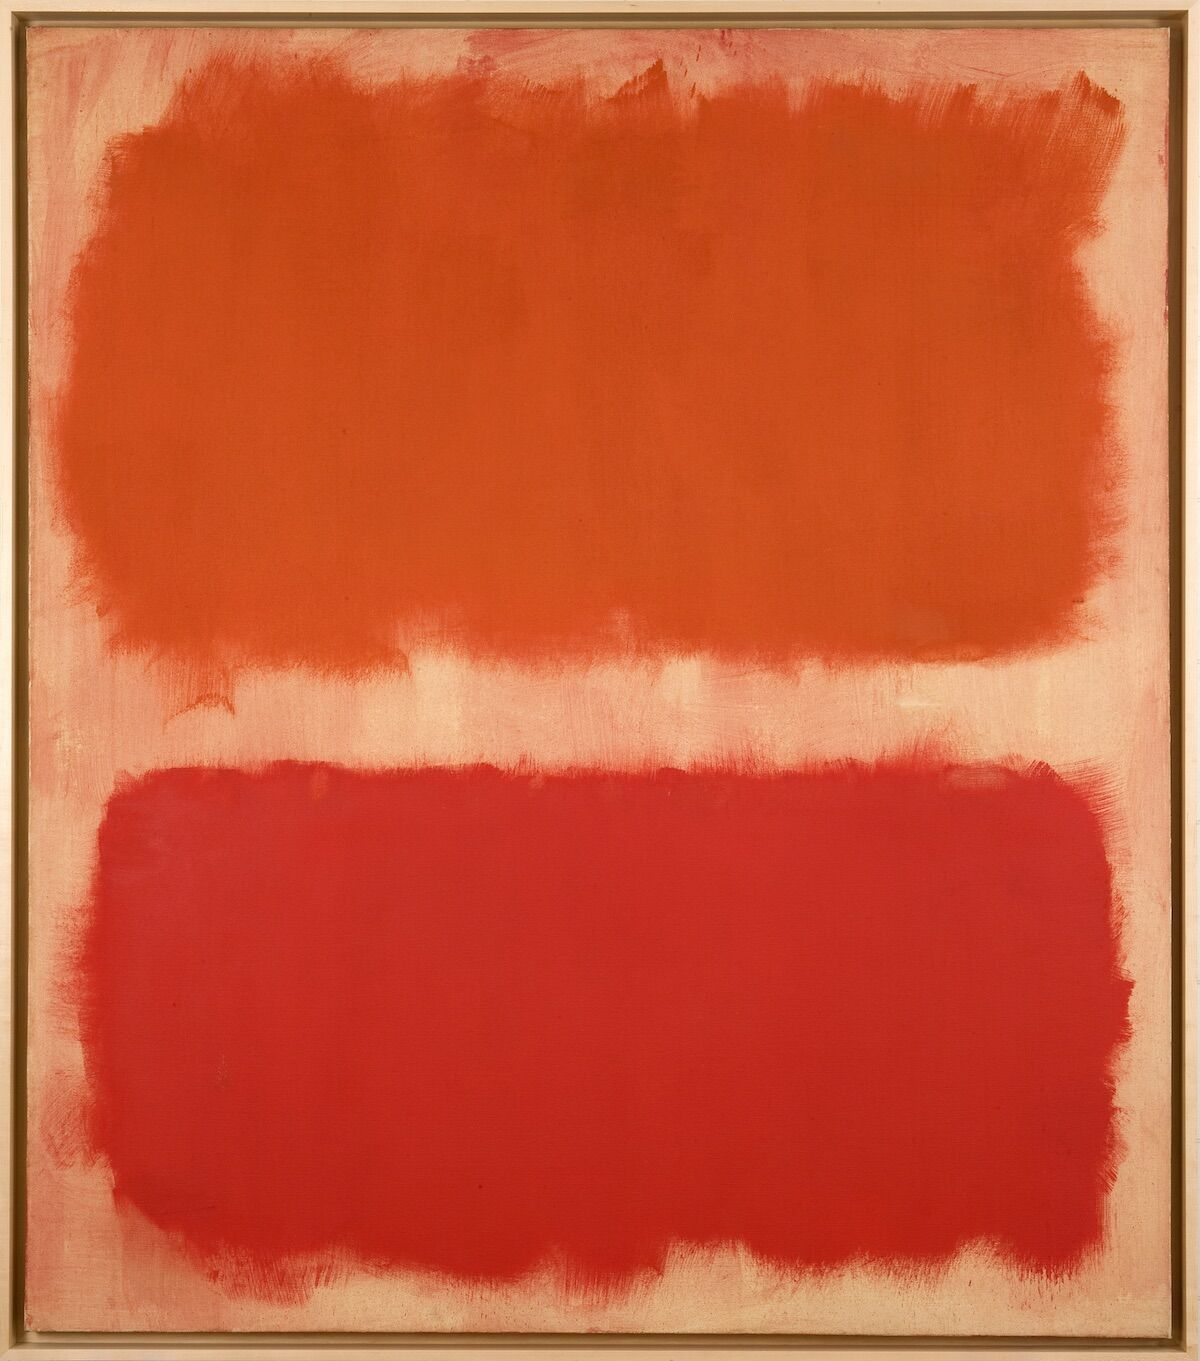 Mark Rothko, Number 22 (reds), 1957. © 2020 Kate Rothko Prizel and Christopher Rothko / ARS, New York. Courtesy the Donald B. Marron Family Collection, Acquavella Galleries, Gagosian, and Pace Gallery.